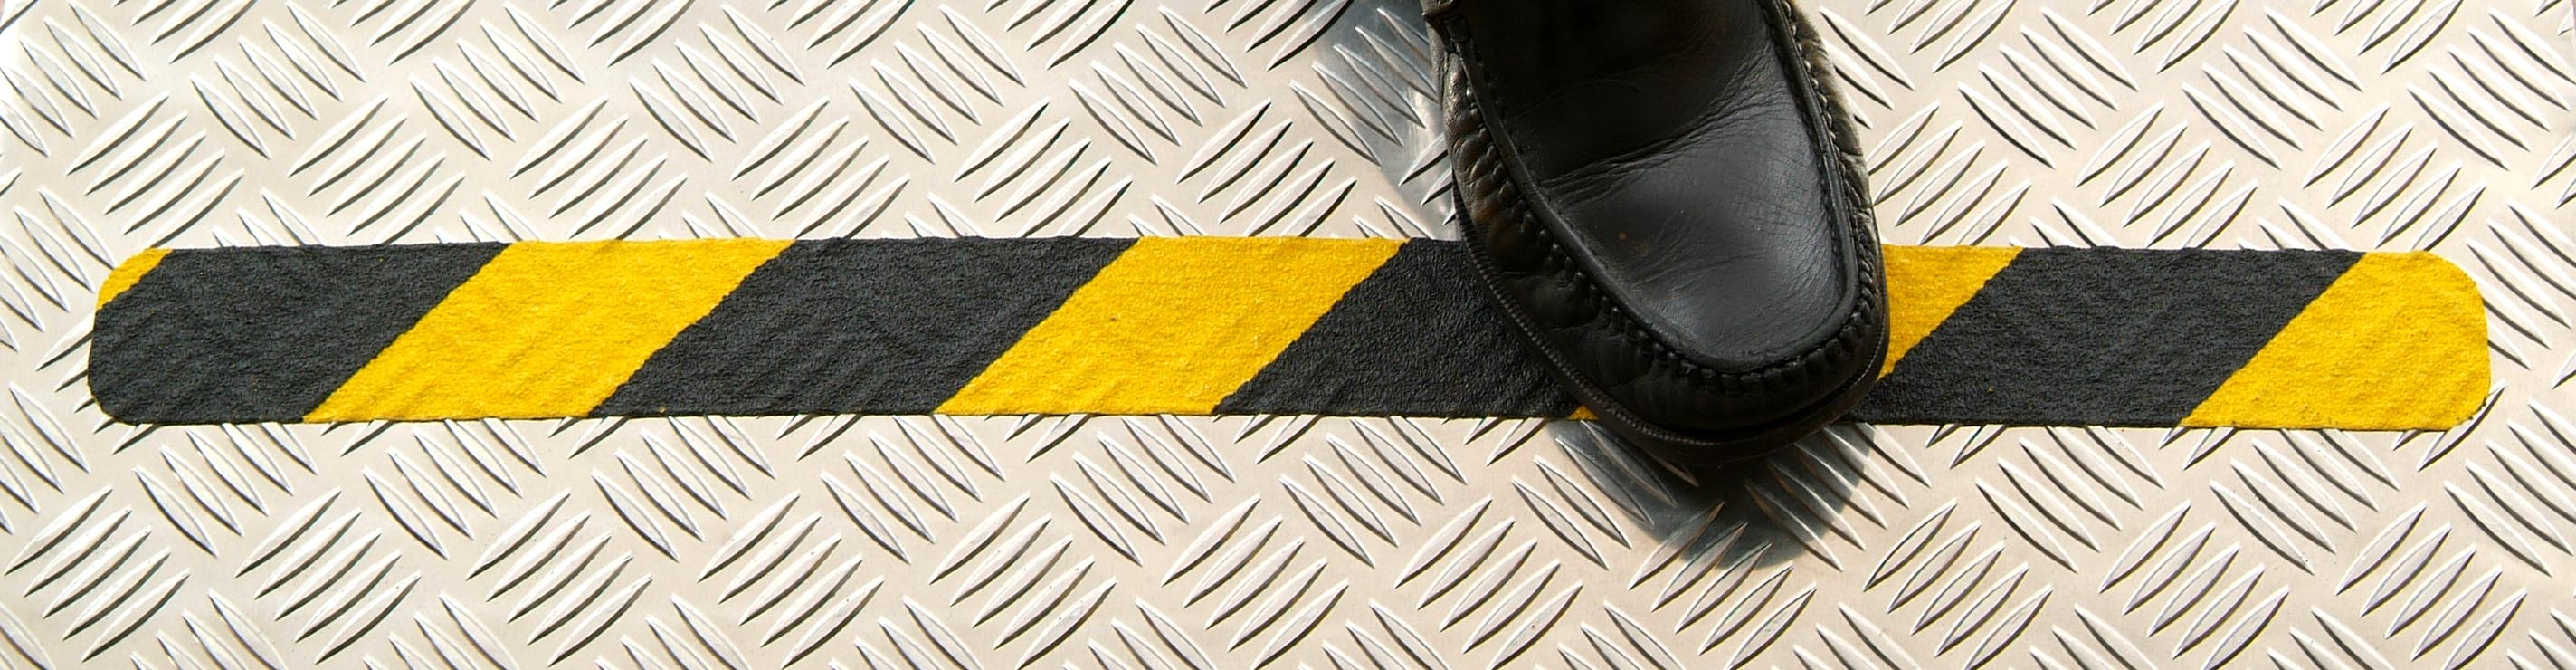 Black Yellow hazard conformable on chequer plate with show